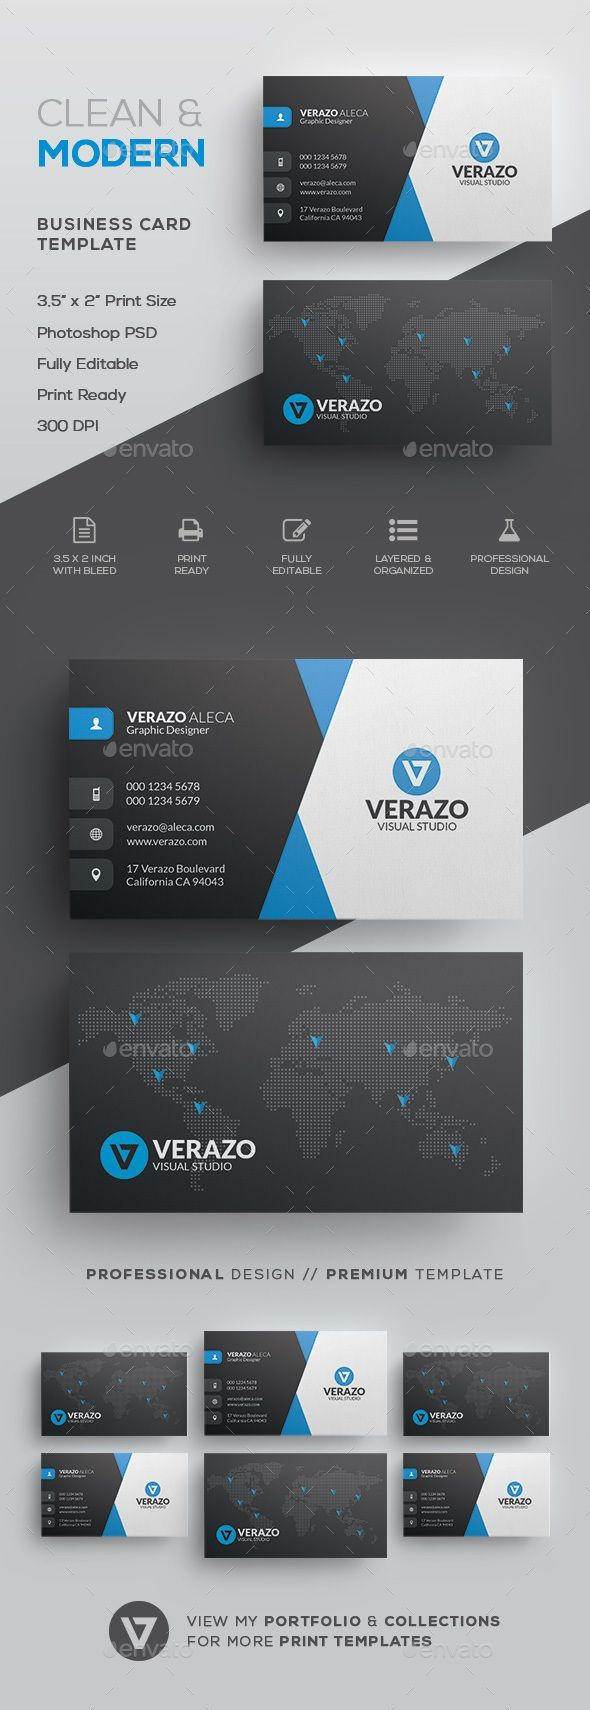 Templates : Business Card Template Word Online Also Business Card ...